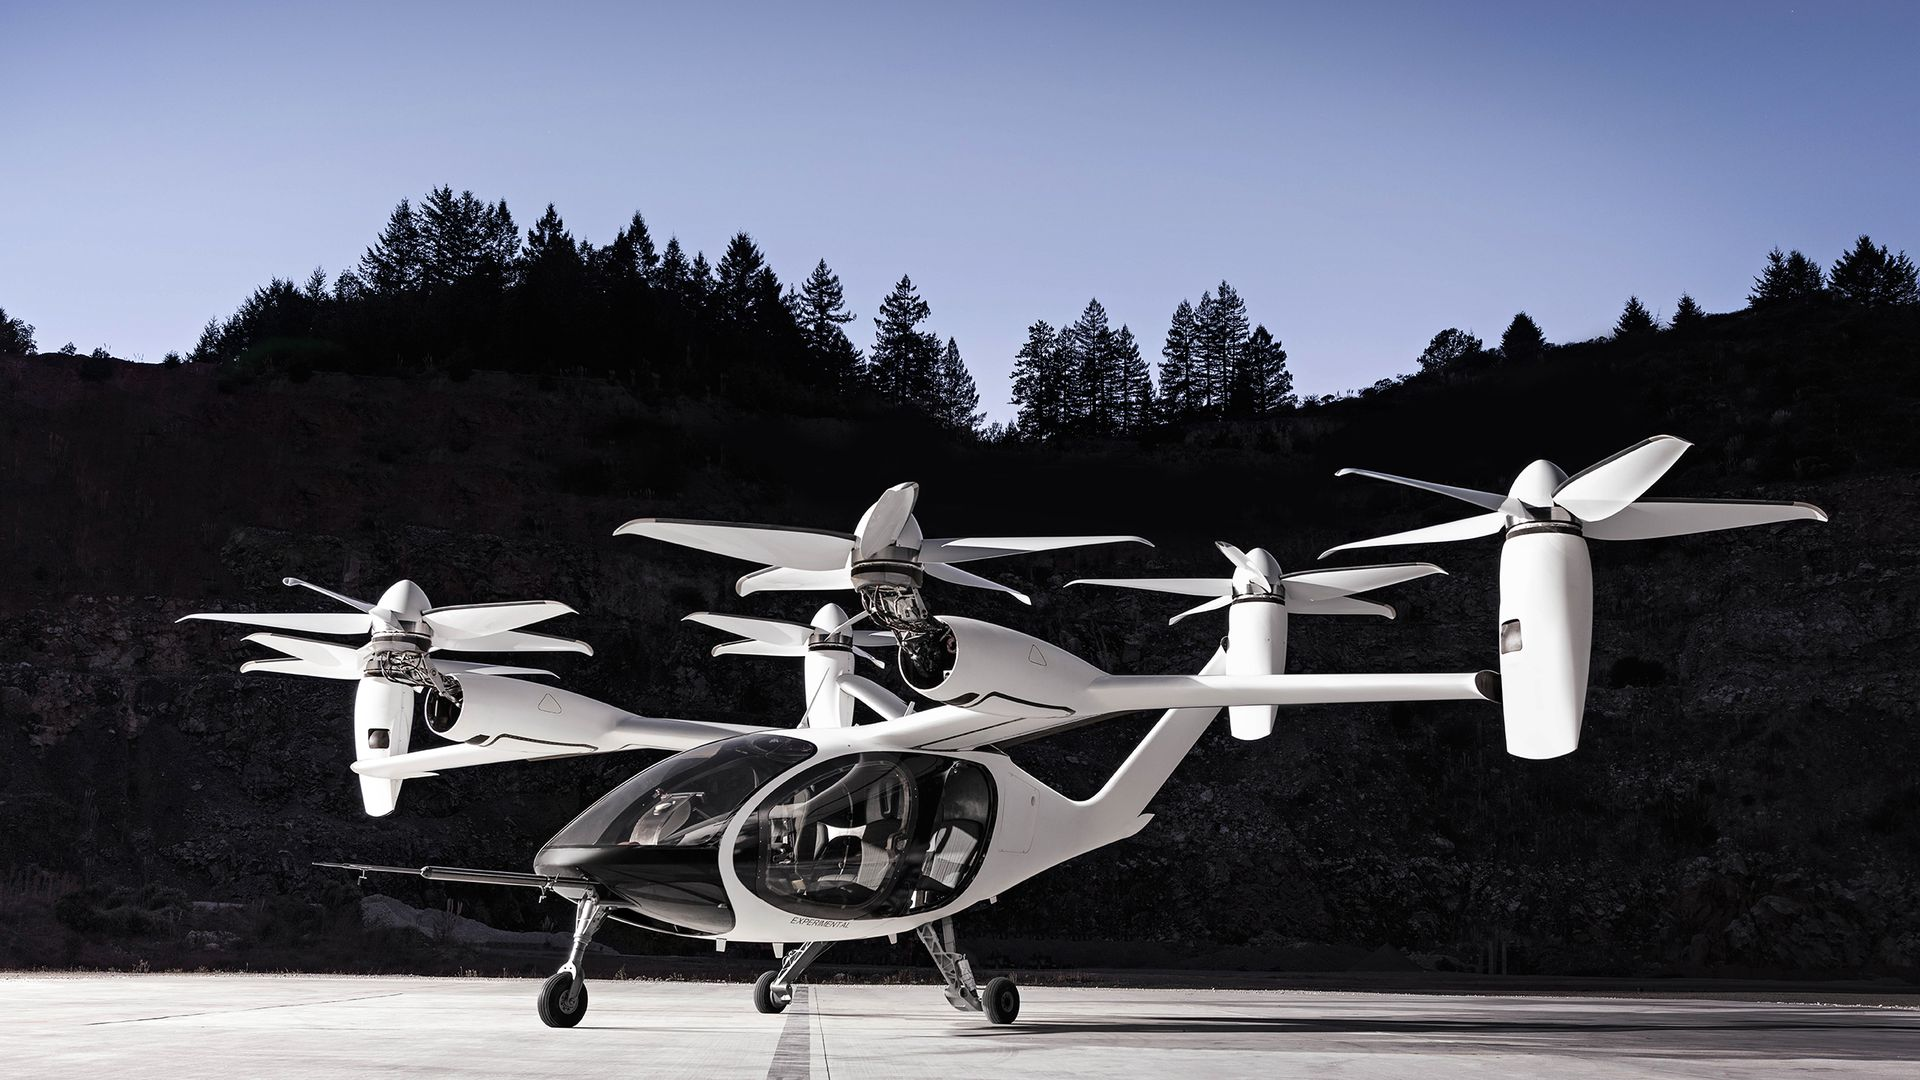 Toyota and others bet nearly $600 million on electric air taxis